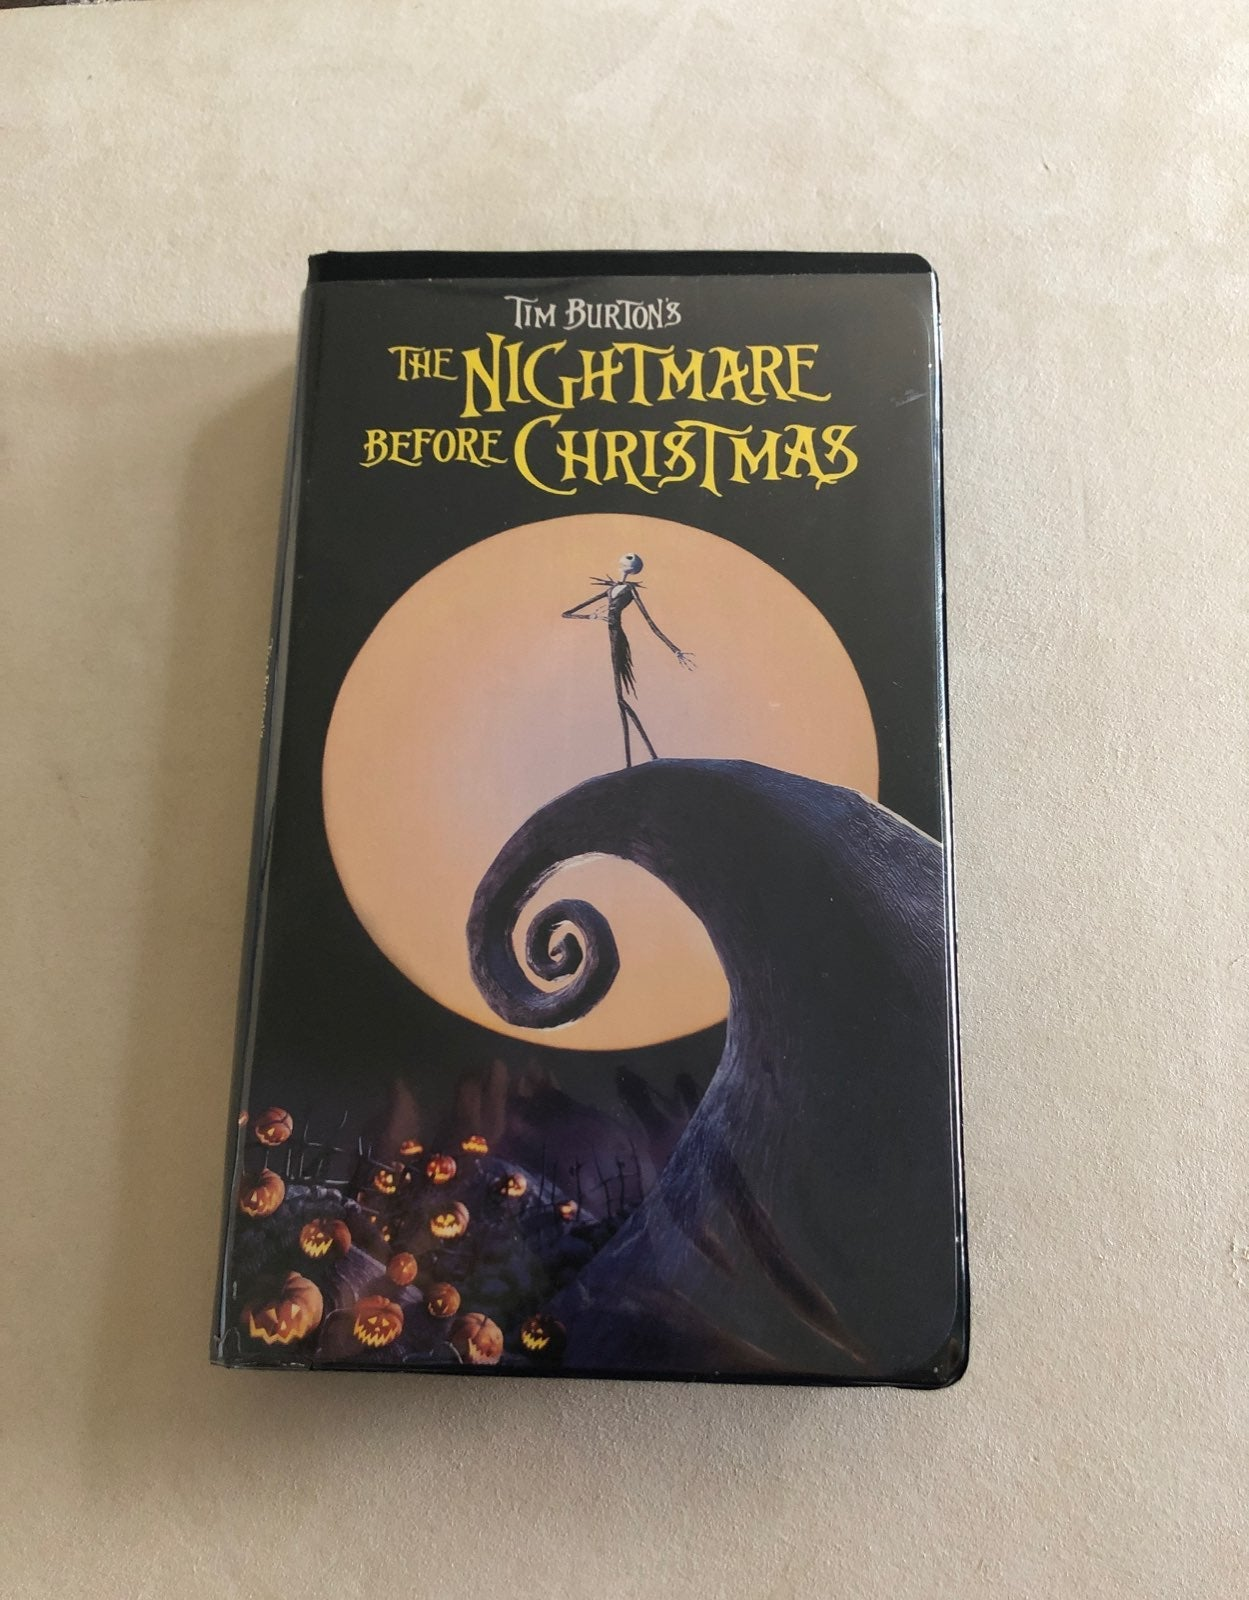 The Nightmare Before Christmas VHS tape